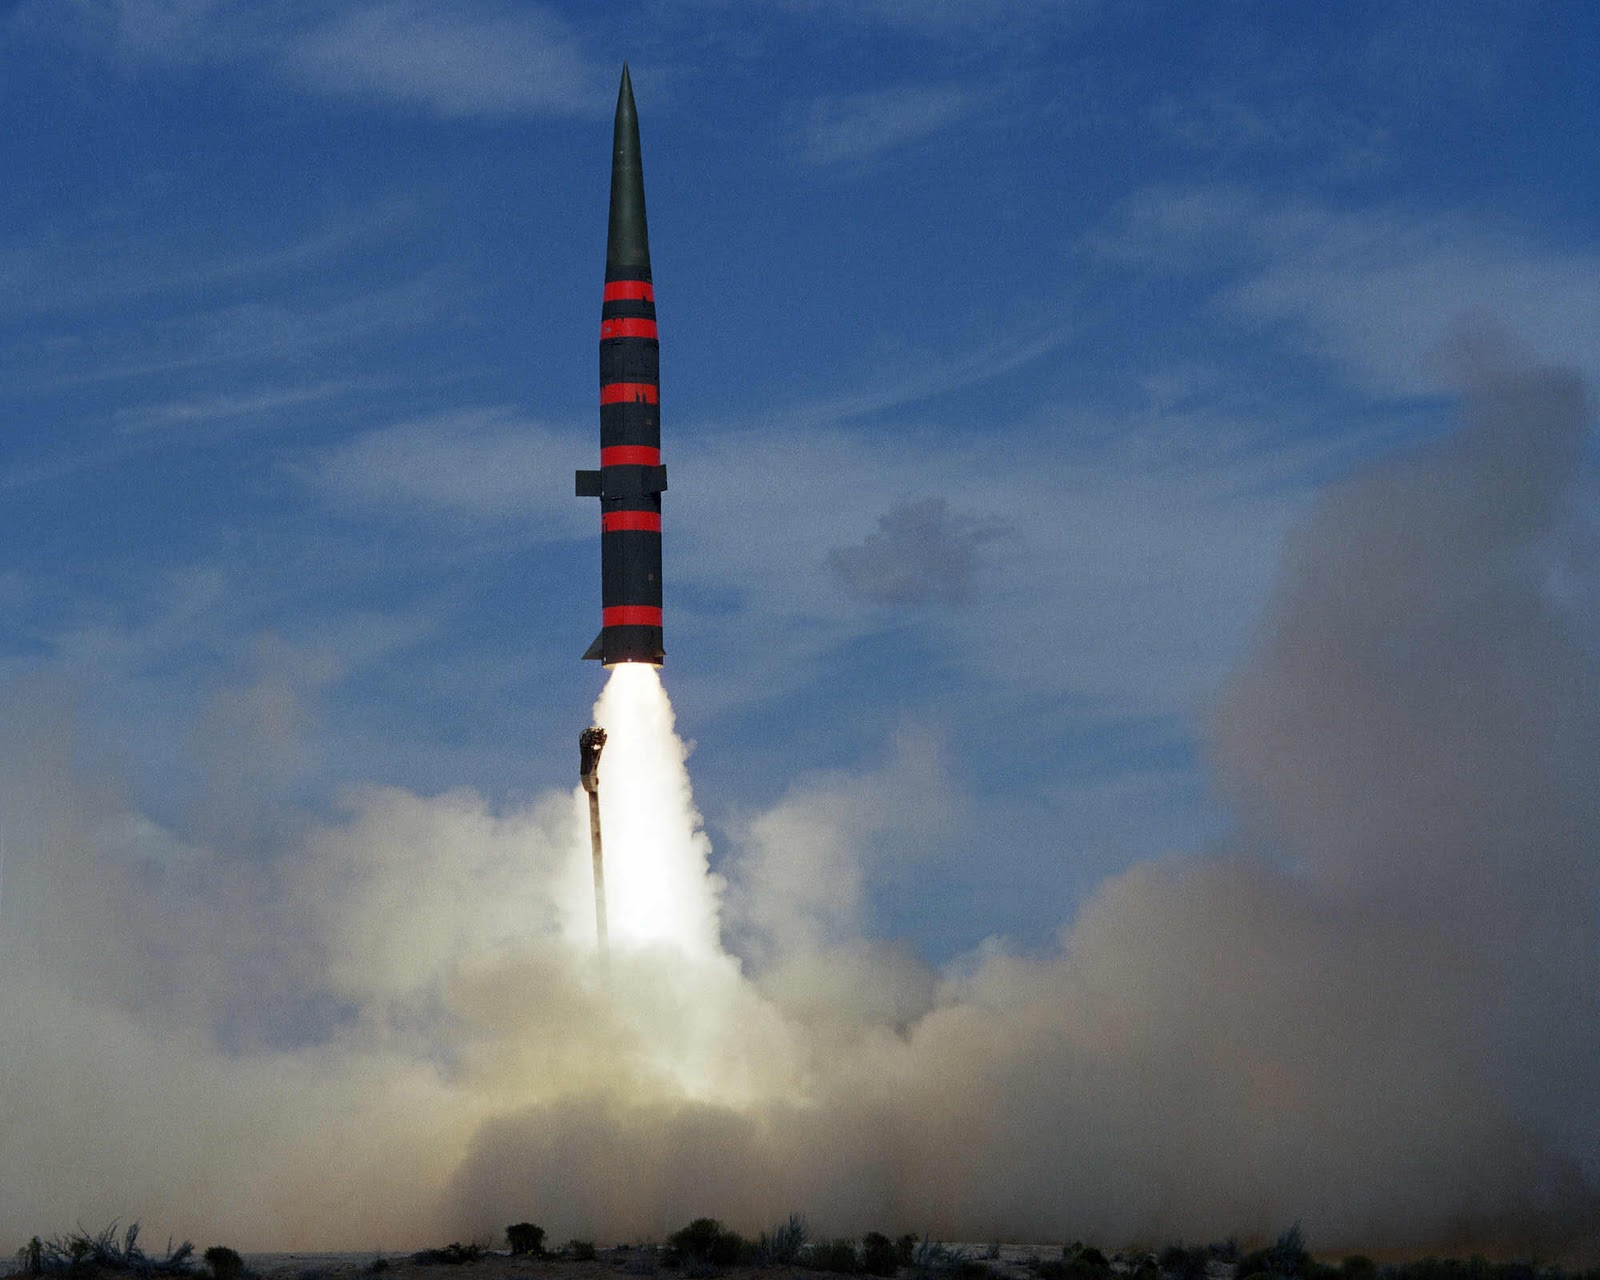 Martin Bets on Orlando and Wins the Pershing Missile Contract